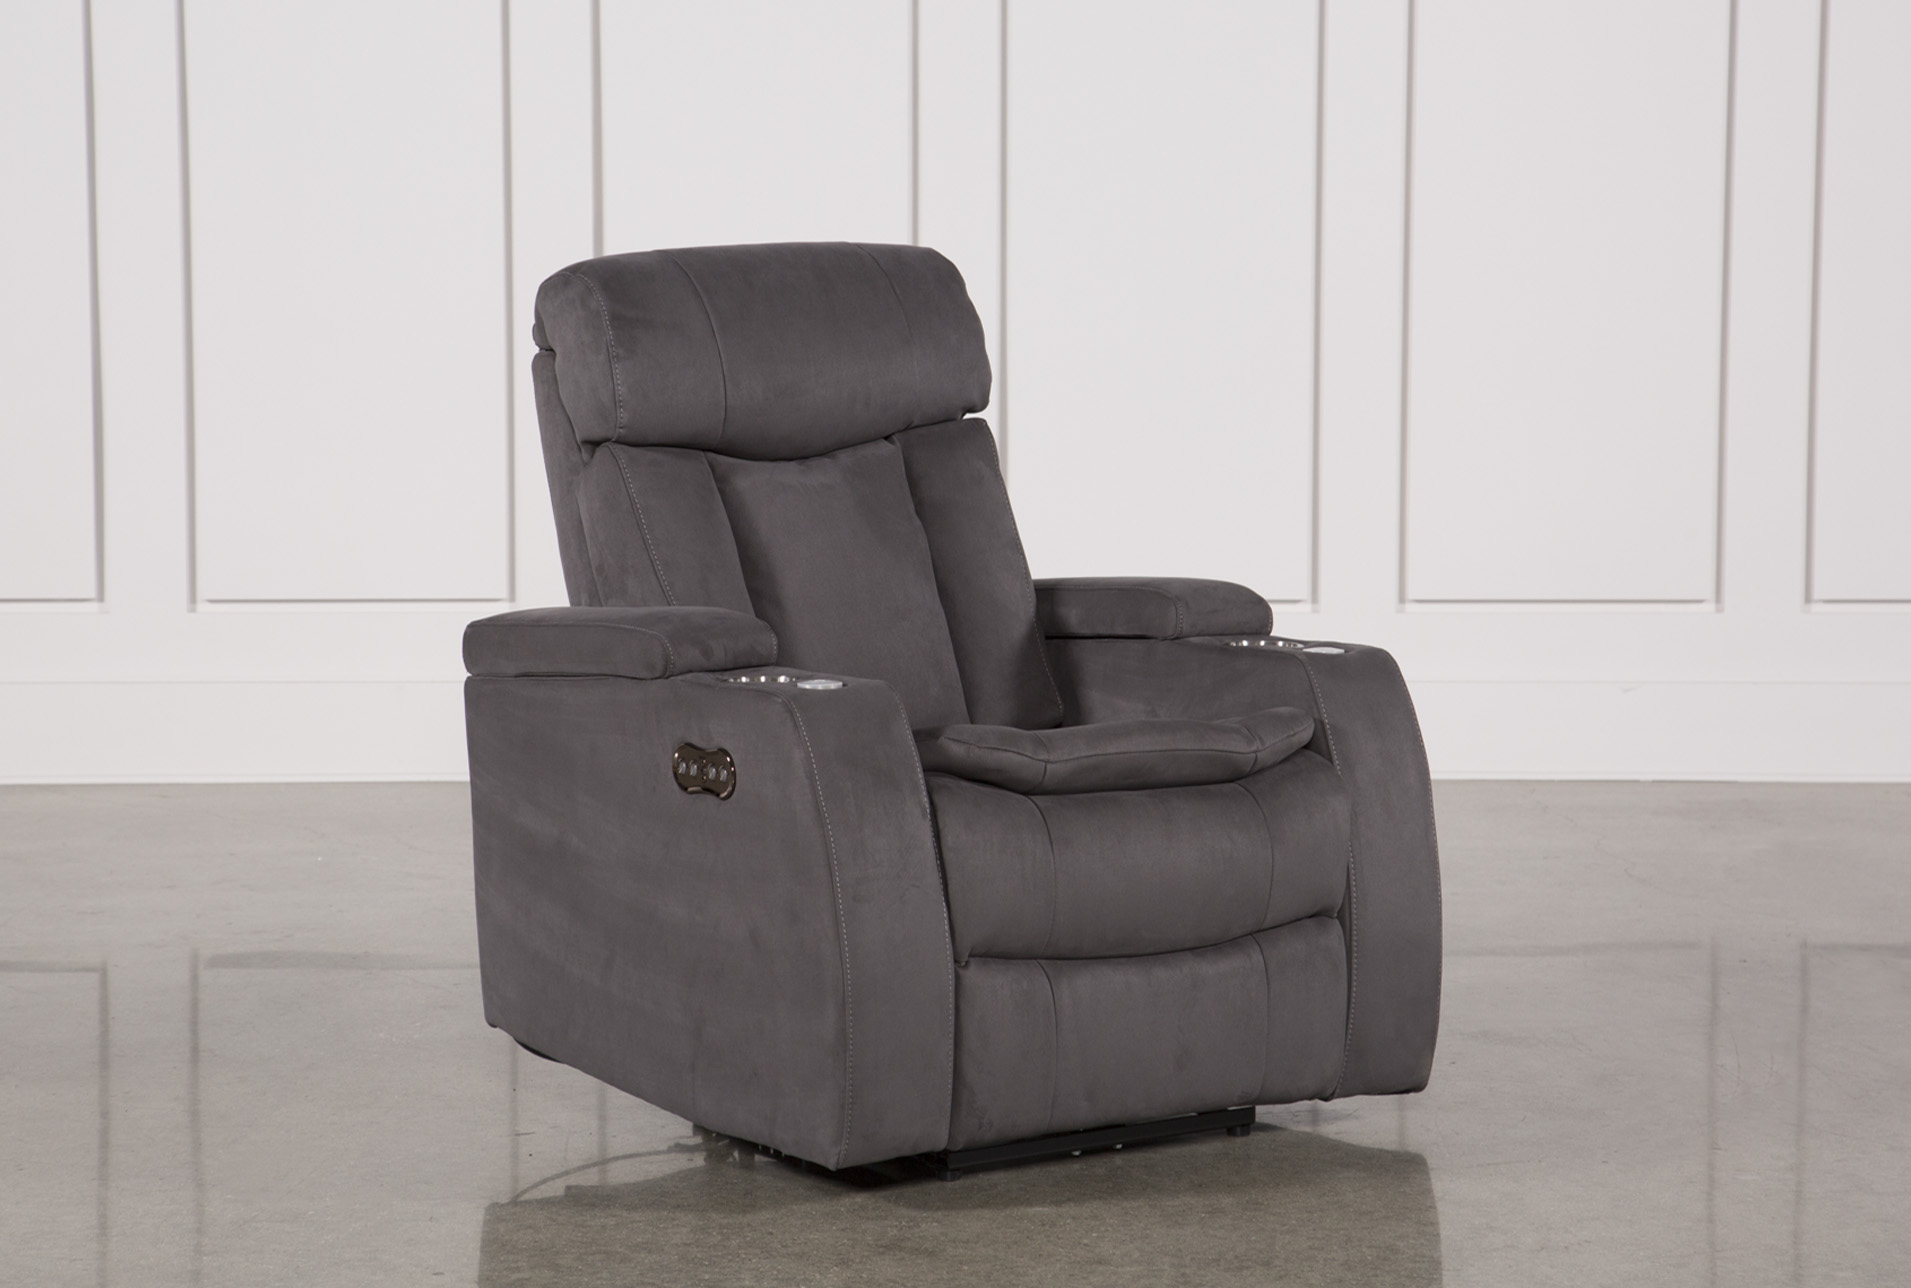 Celebrity Steel Home Theater Recliner W/Power Headrest | Living Spaces